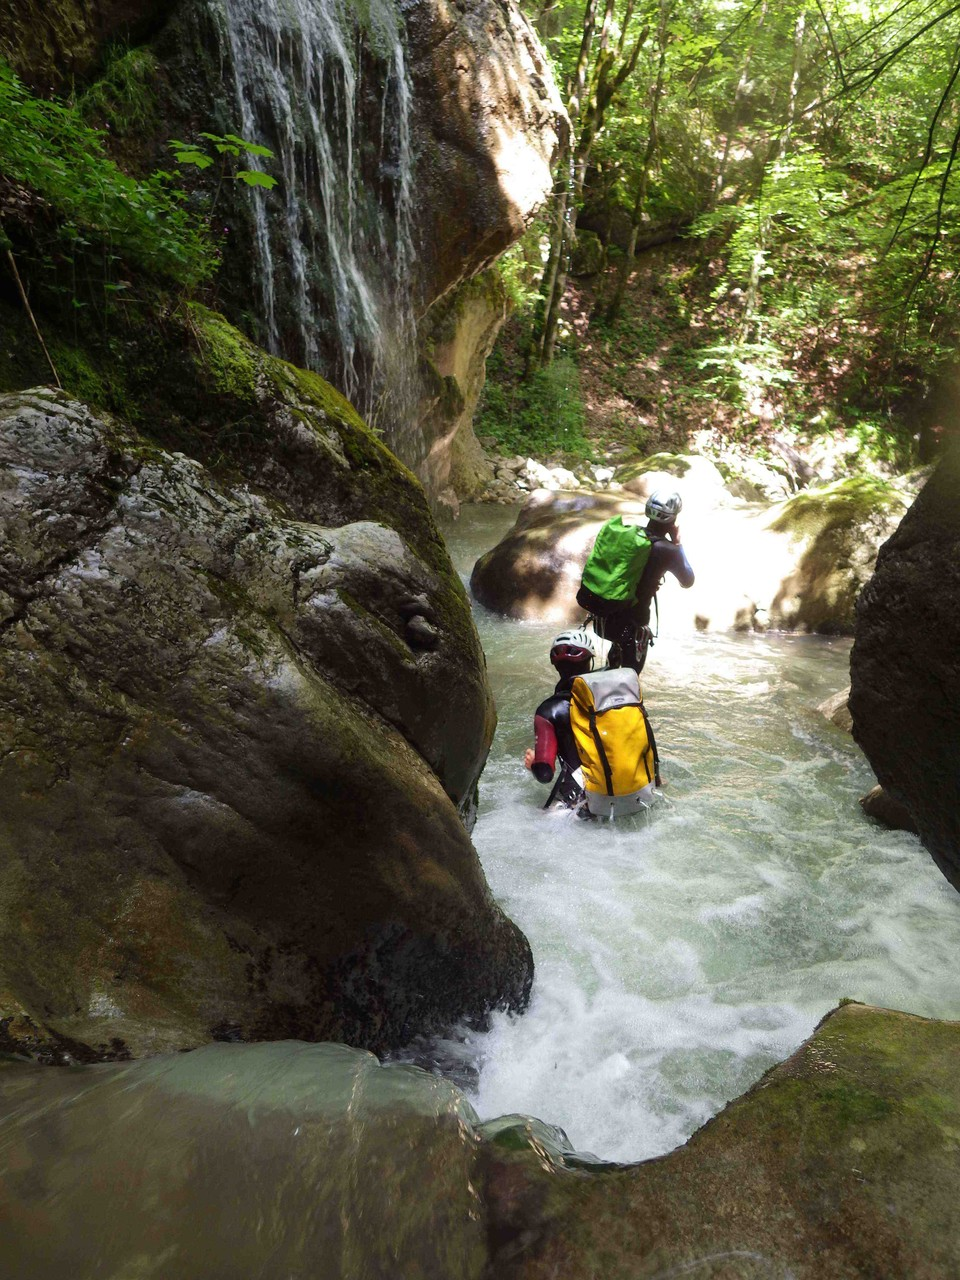 Guide canyoning du trièves: moules marinières